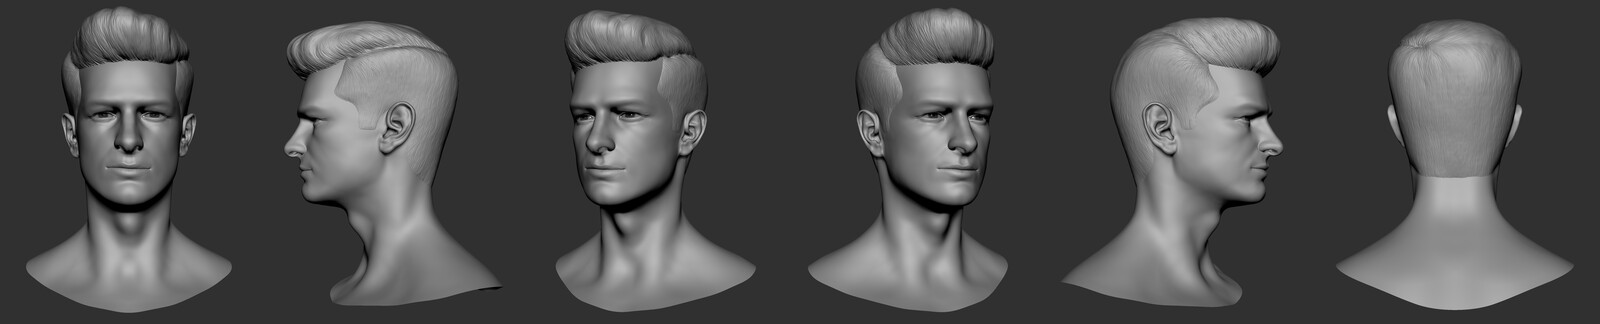 Andrew Garfield Head Sculpt